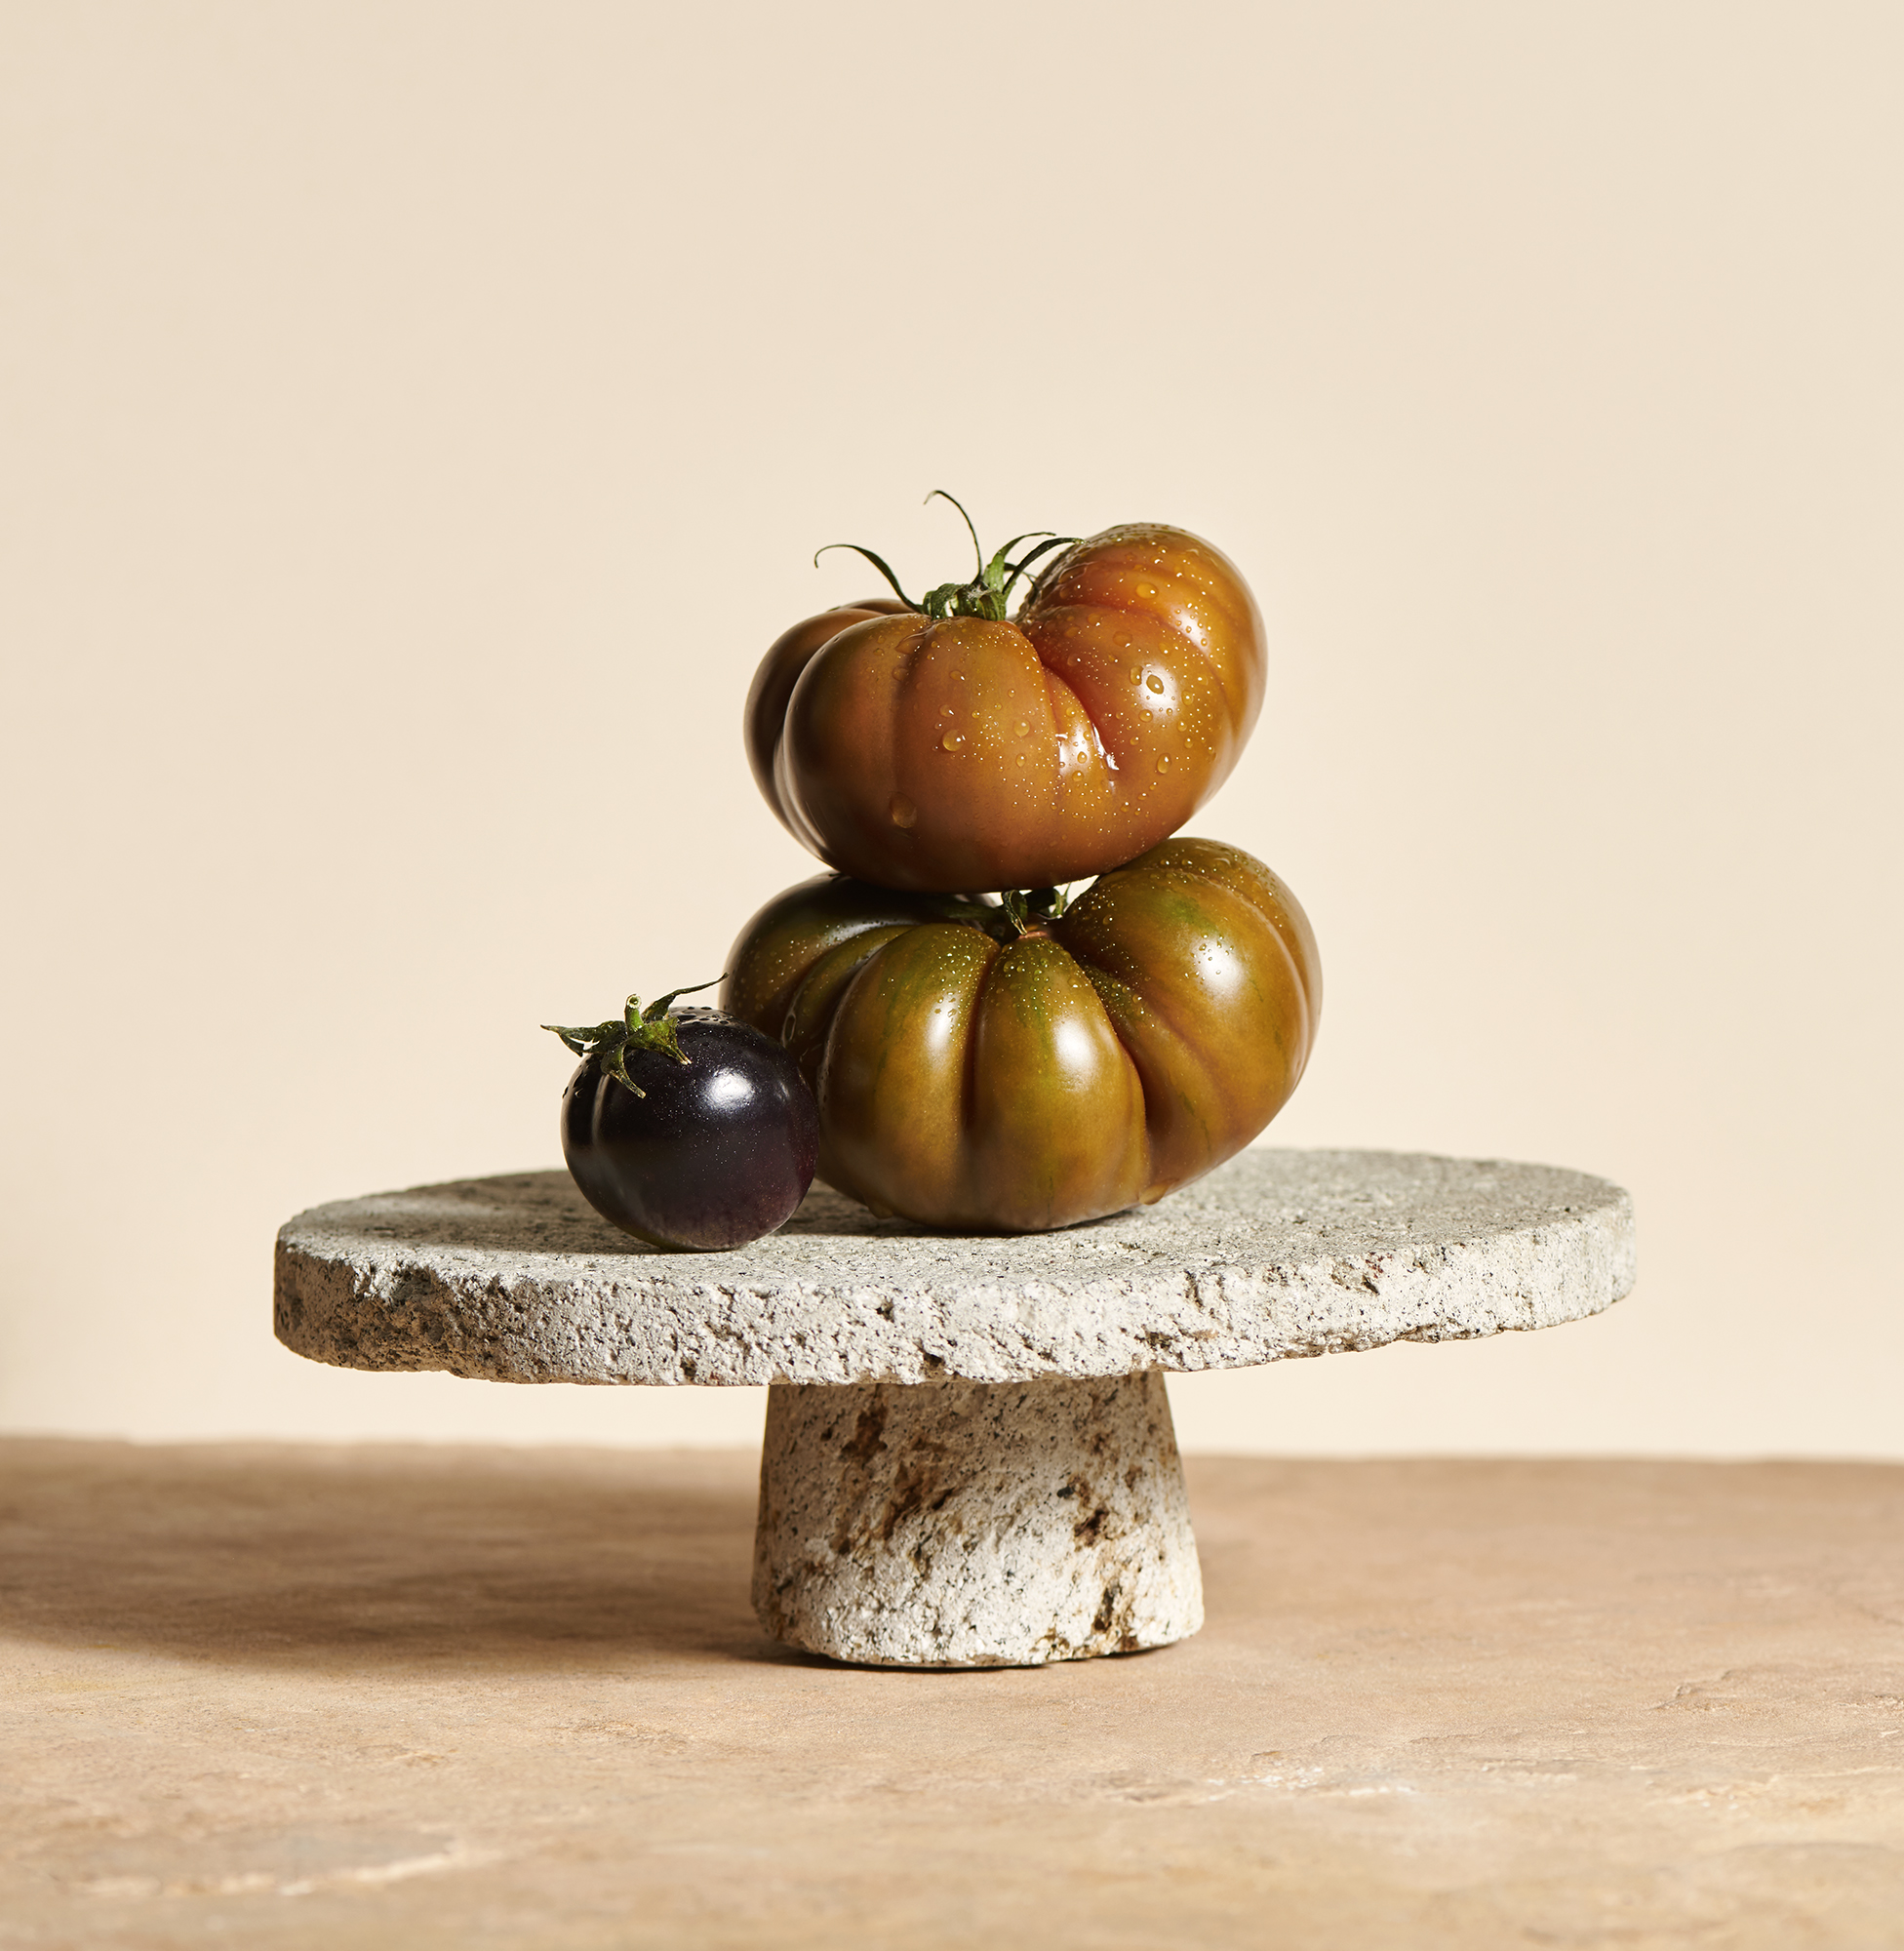 still life photography of heritage tomatoes